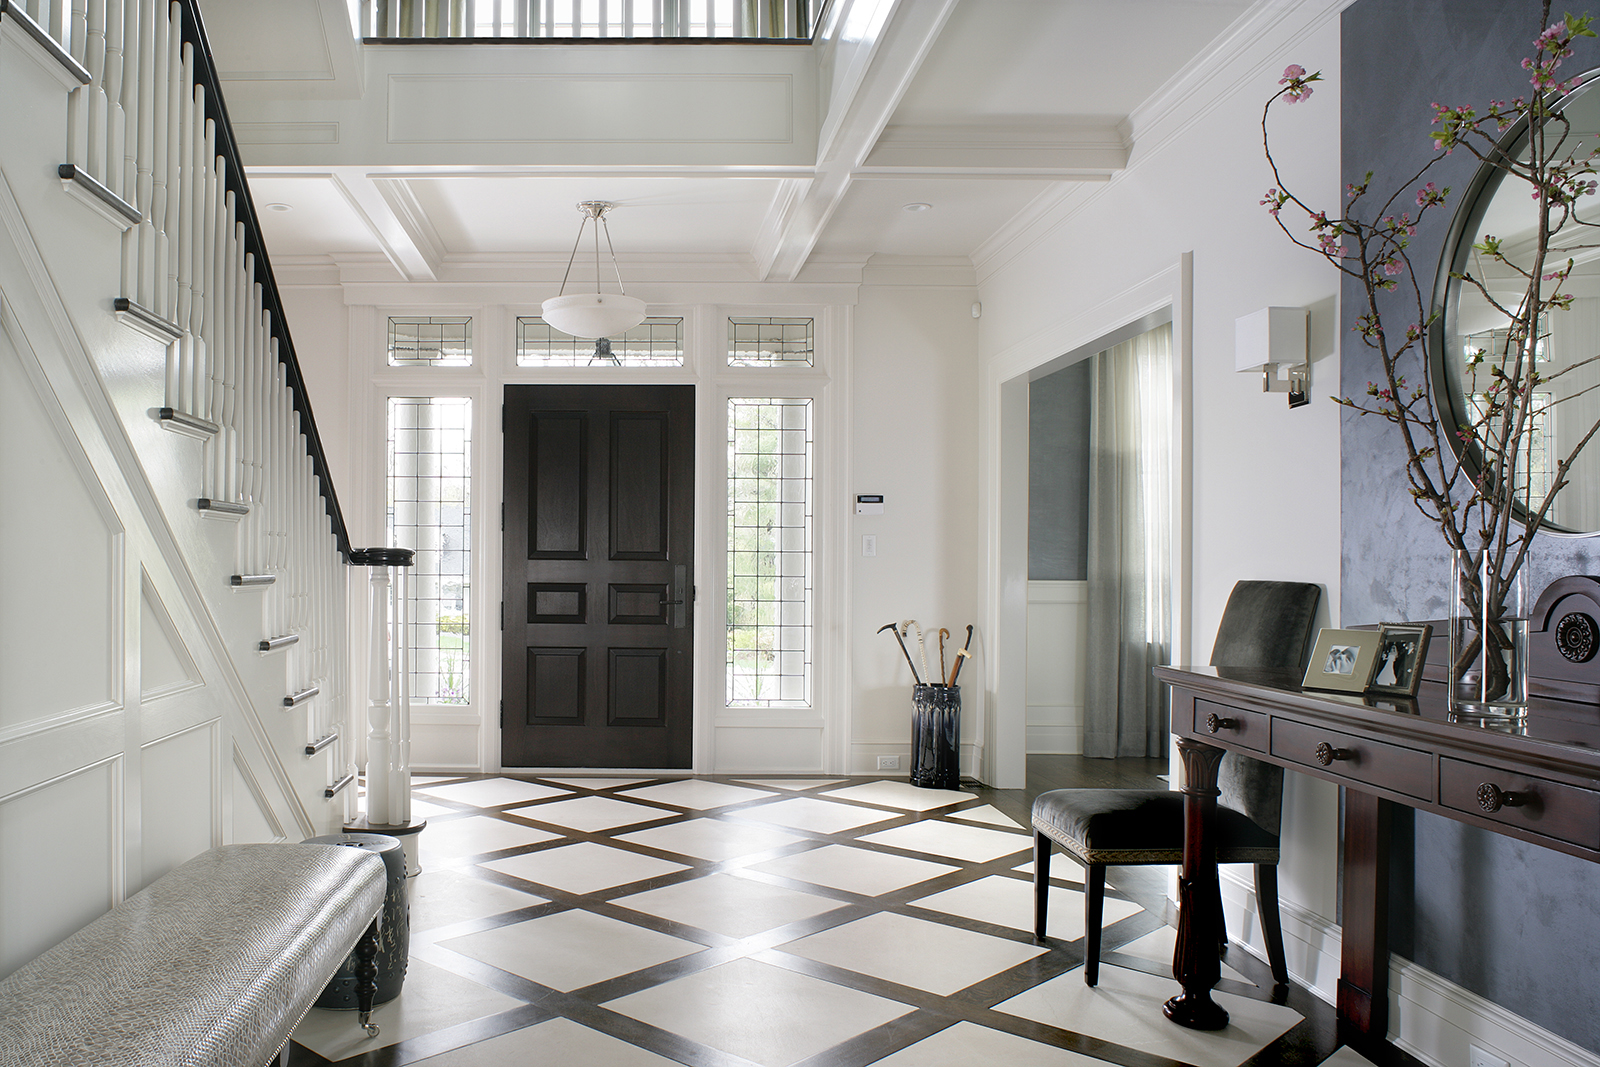 Entrance Foyer with custom limestone inlaid floor design by Valerie Grant Interiors